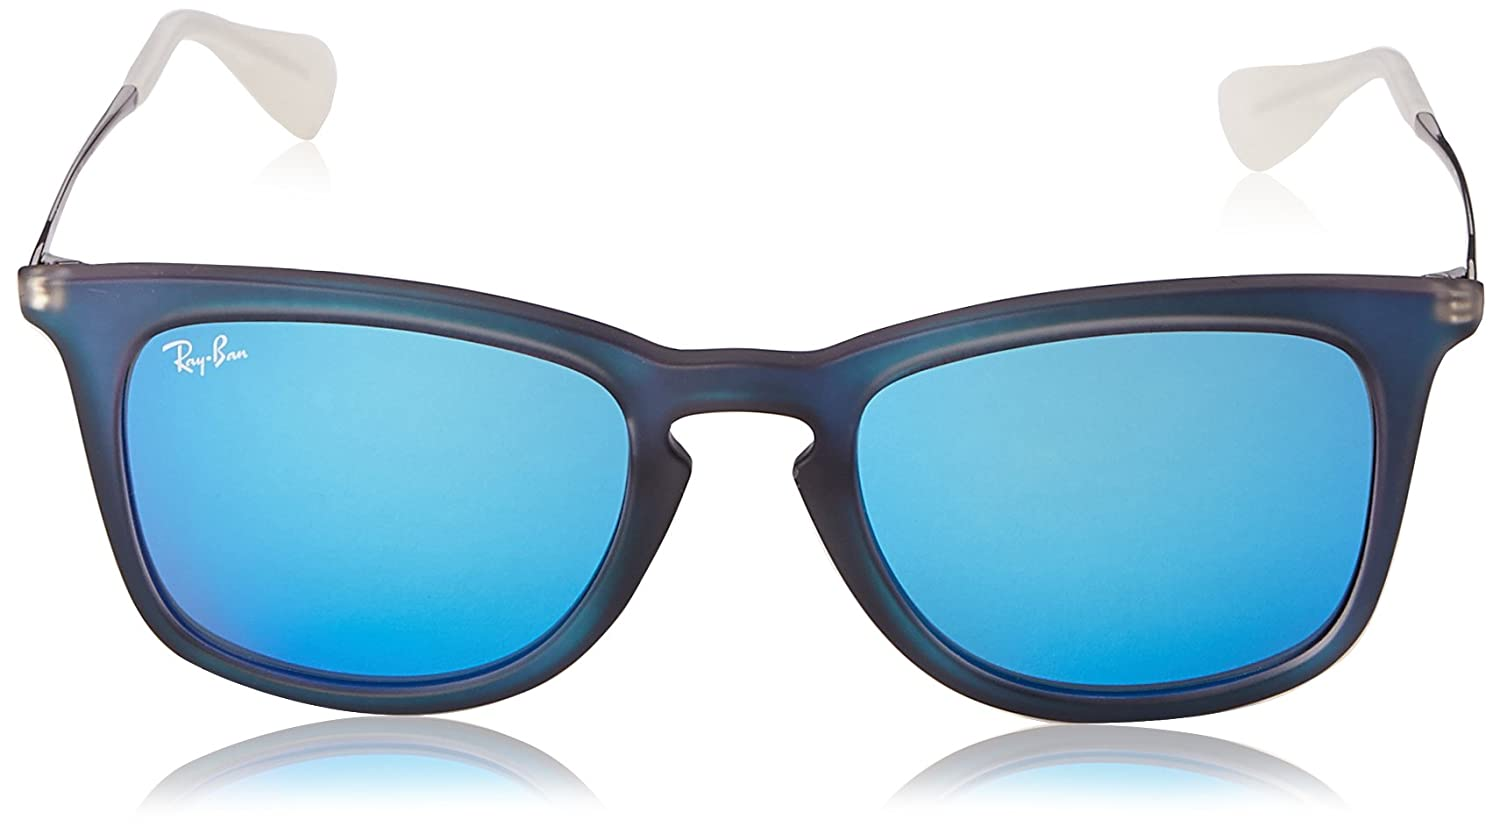 343b9881bfb Amazon.com  Ray-Ban Men s Injected Man Sunglass Square